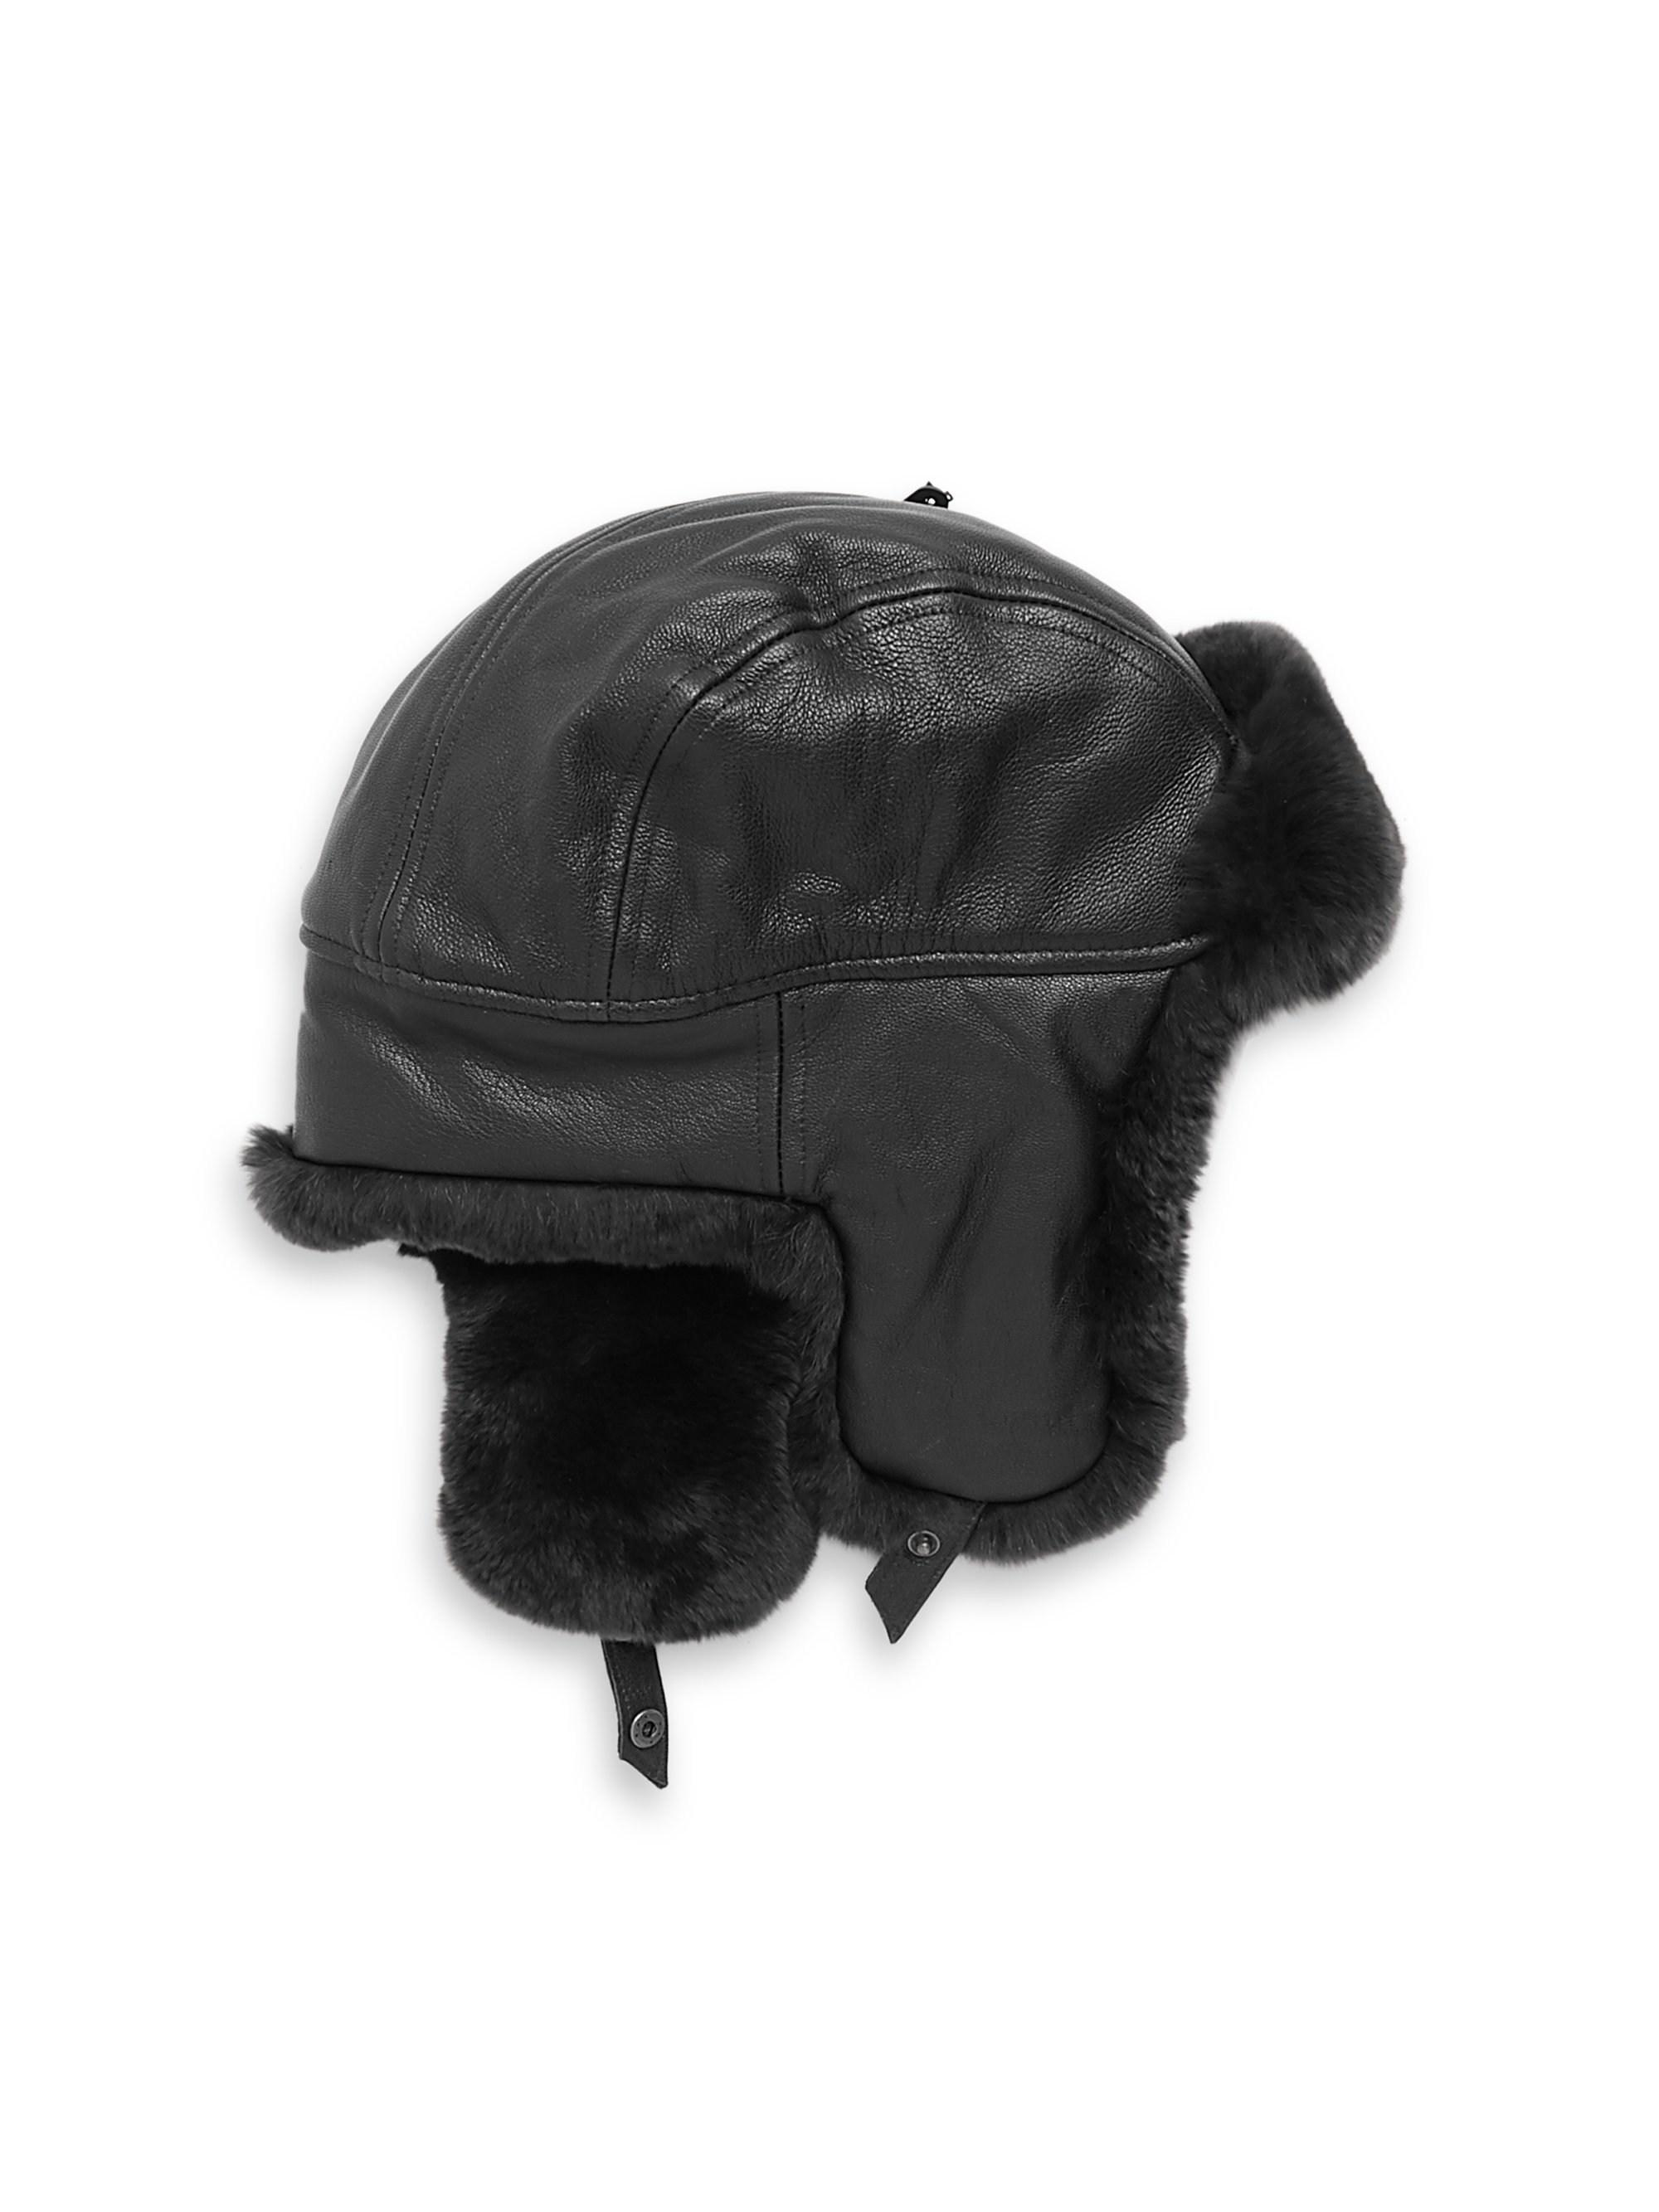 Lyst - Crown Cap Sheared Rabbit Aviator Hat in Black for Men 8ece5f449071